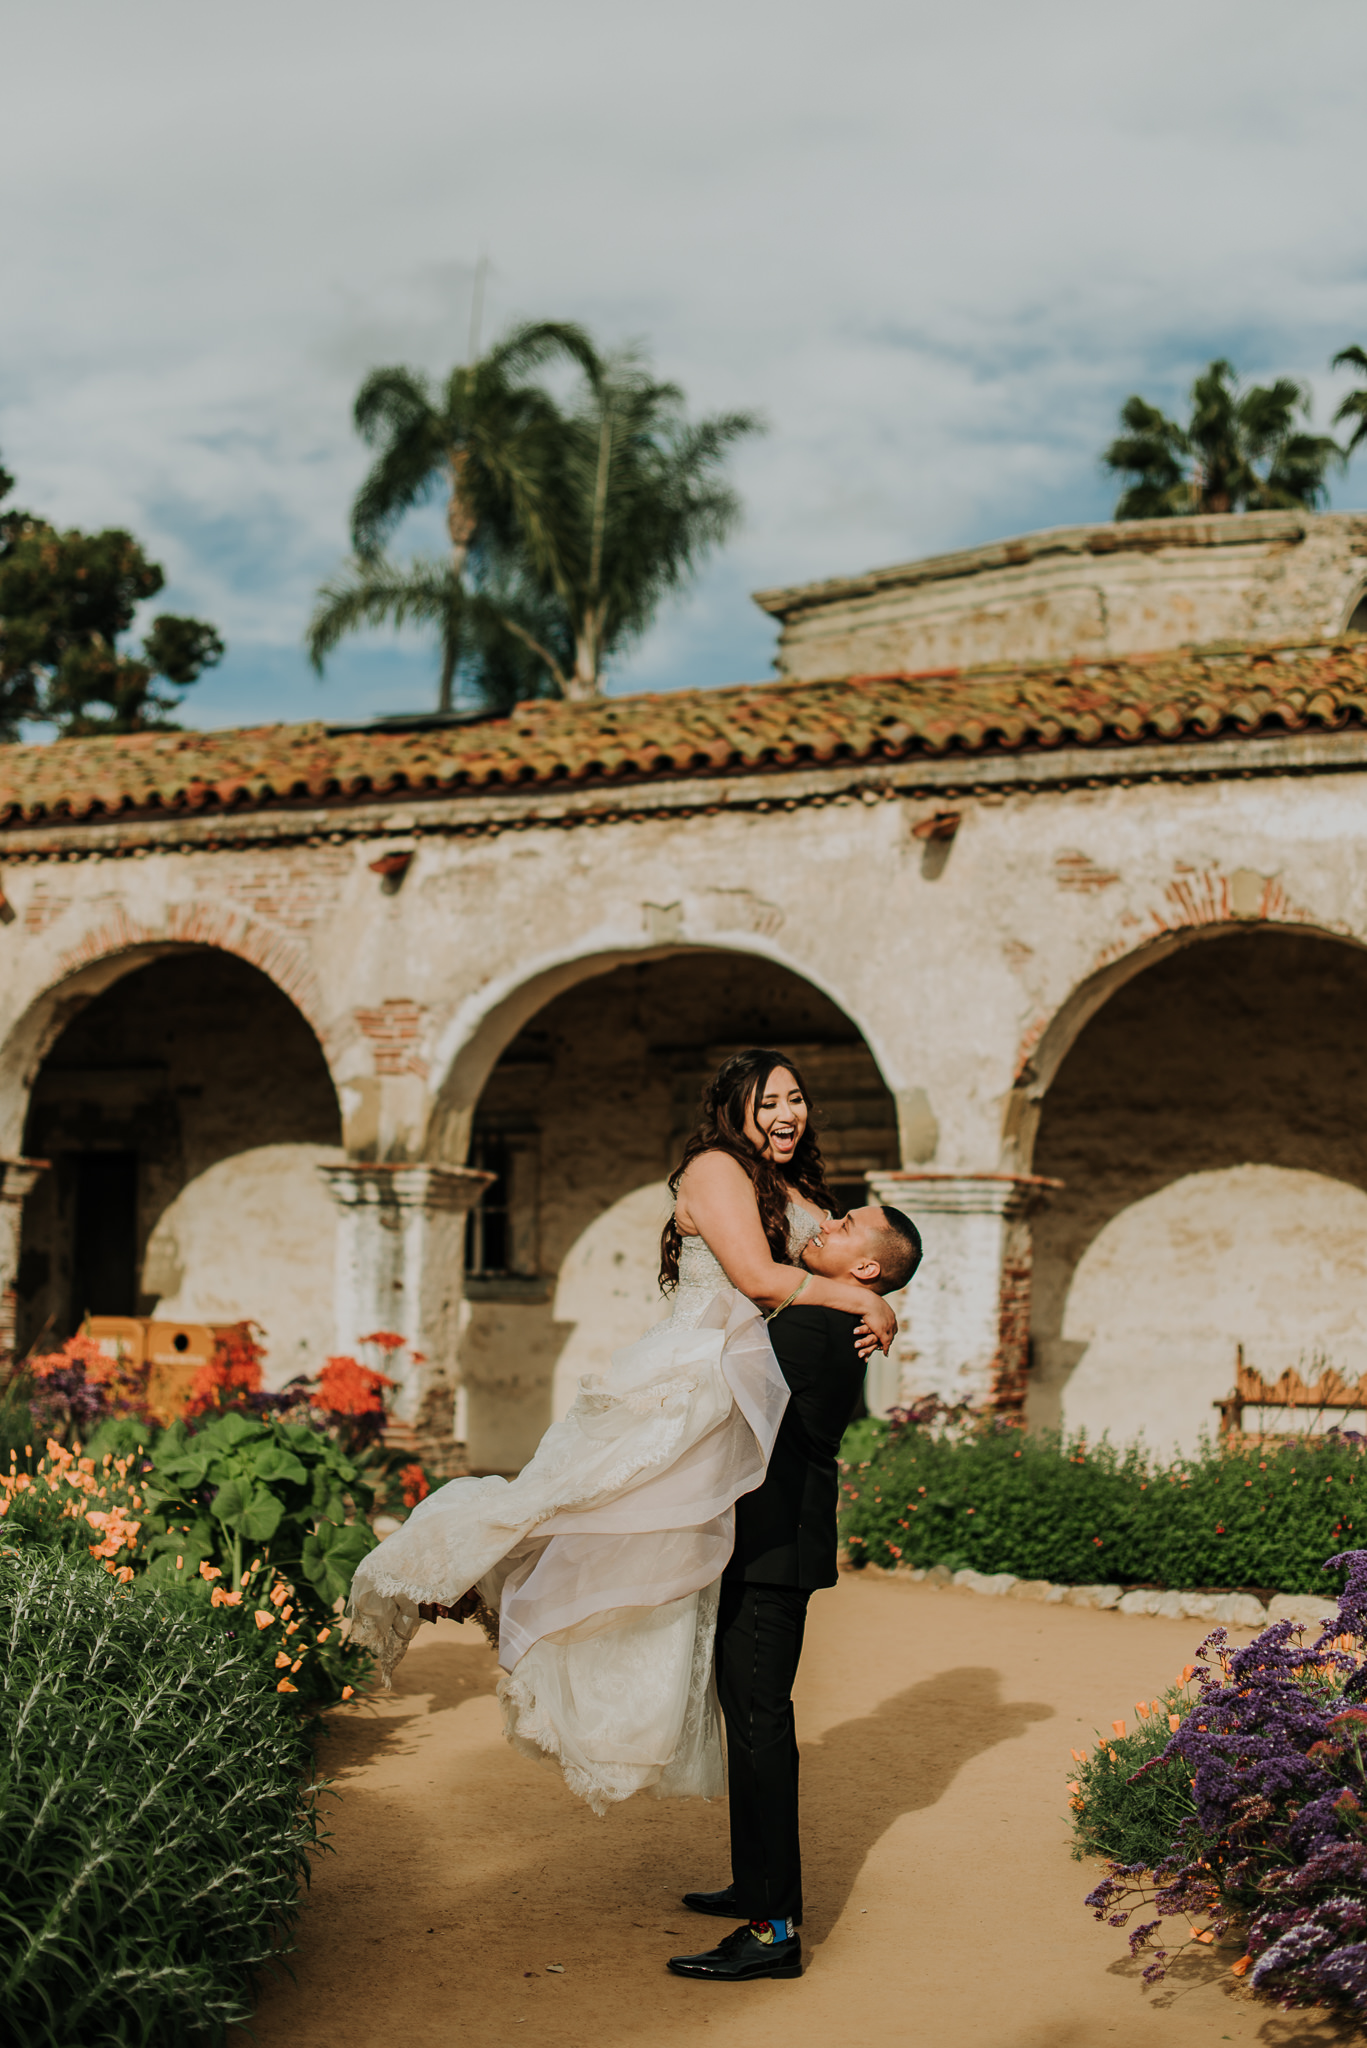 2019-04-05_Brittany_and_Nick_-_Married_-_San_Juan_Capistrano-96.jpg